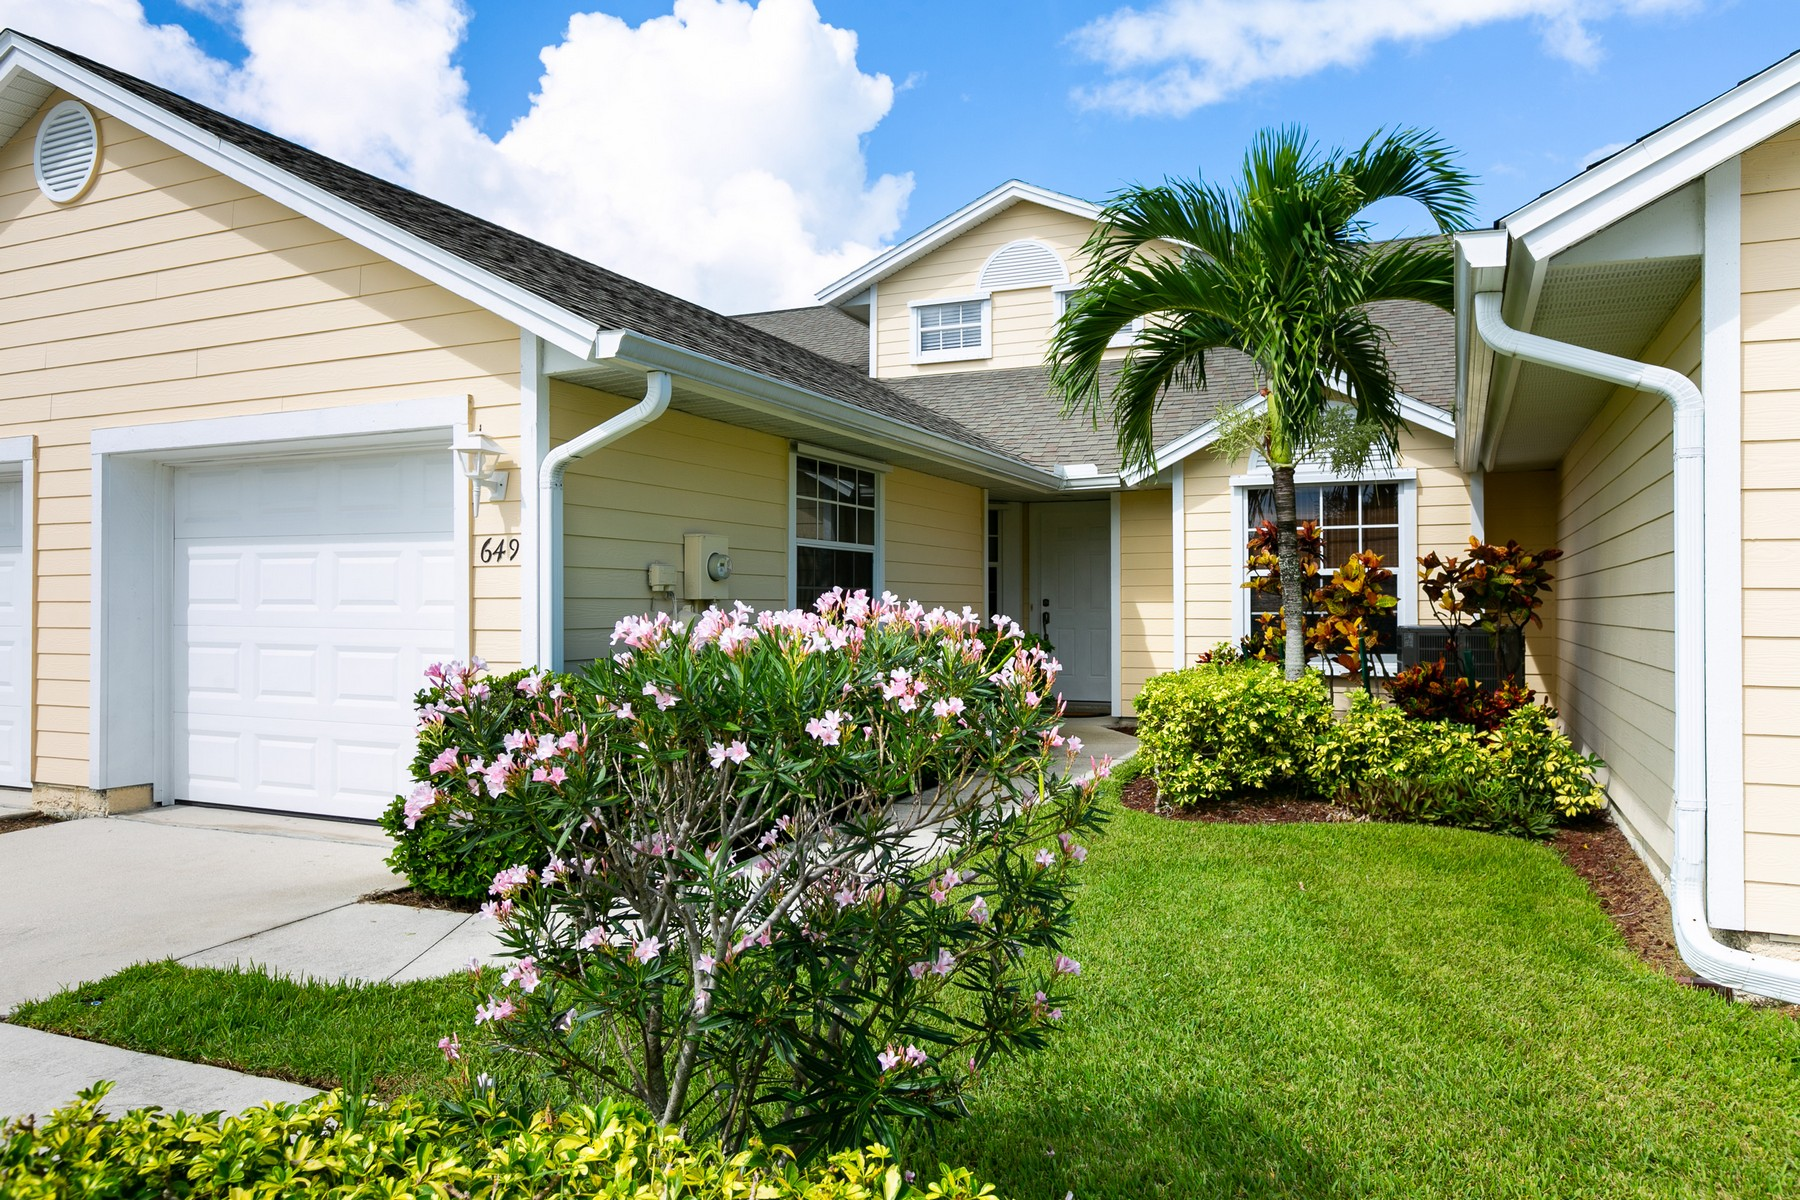 Property for Sale at Lakefront Updated Villa With Loft 649 5th Avenue Vero Beach, Florida 32962 United States